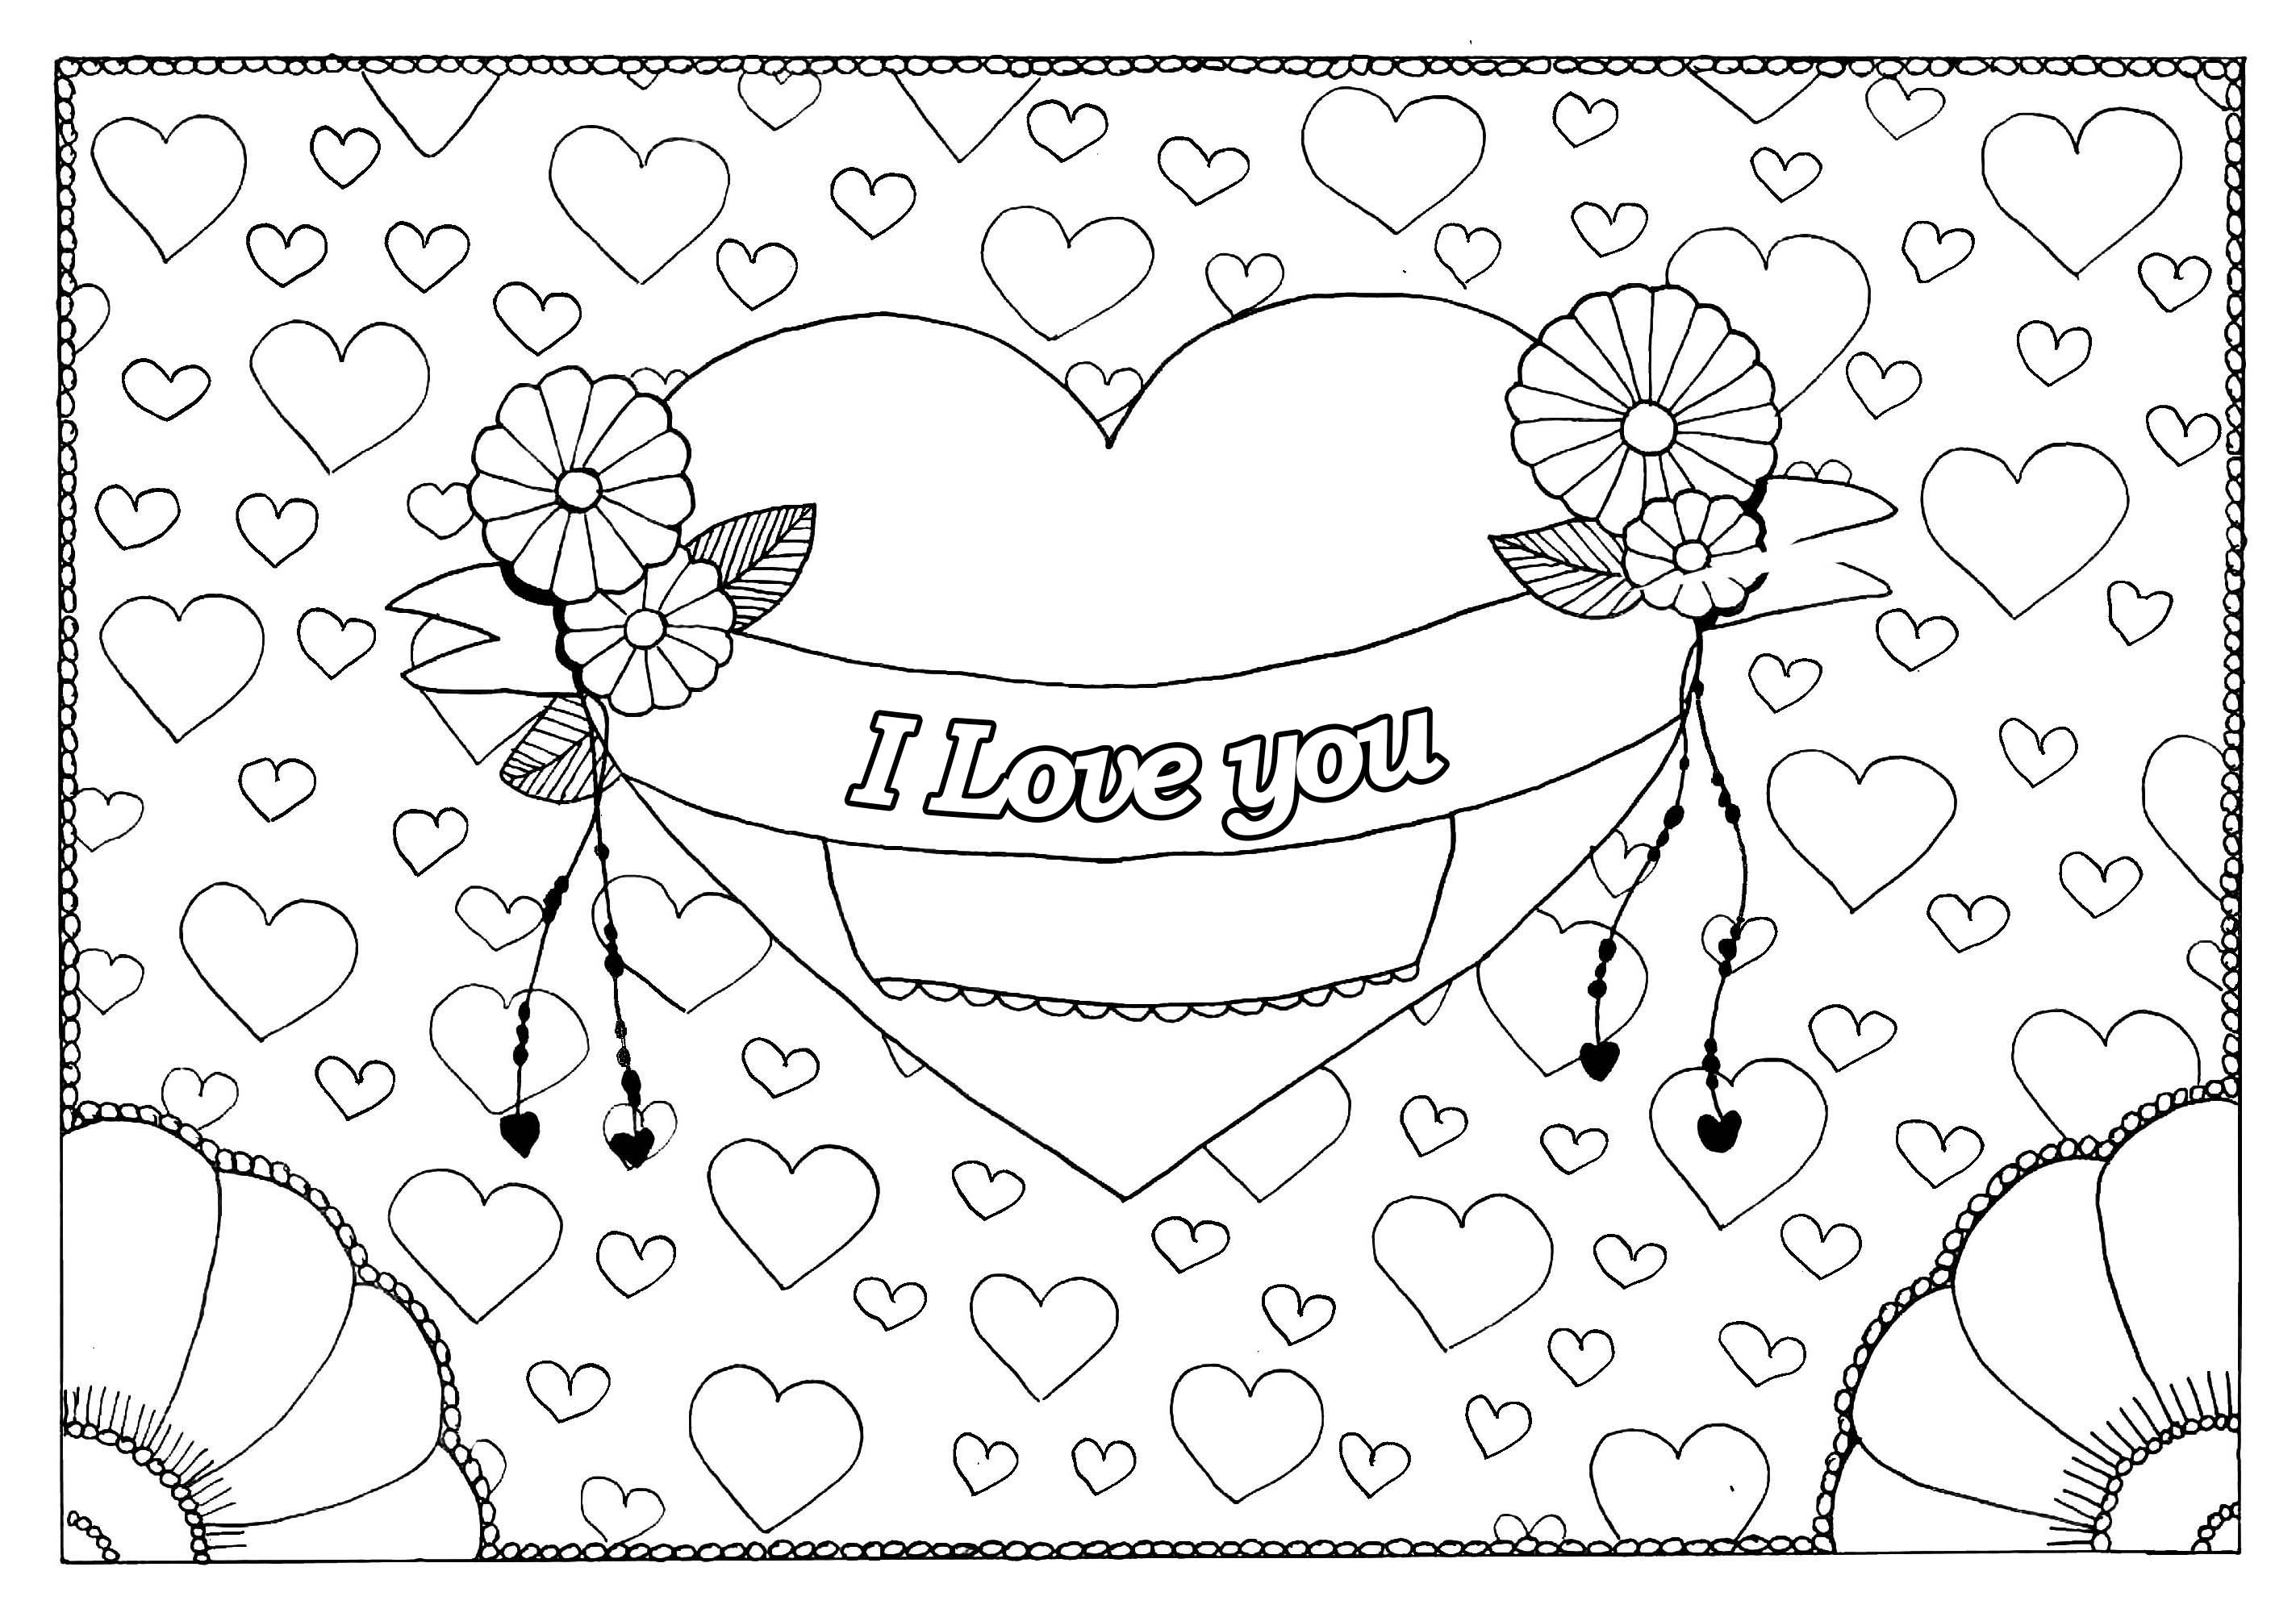 valentine\\\\\\\\\\\\\\\\\\\\\\\\\\\\\\\\\\\\\\\\\\\\\\\\\\\\\\\\\\\\\\\'s coloring pages Valentine s day 5   Valentine's Day Adult Coloring Pages valentine\\\\\\\\\\\\\\\\\\\\\\\\\\\\\\\\\\\\\\\\\\\\\\\\\\\\\\\\\\\\\\\'s coloring pages